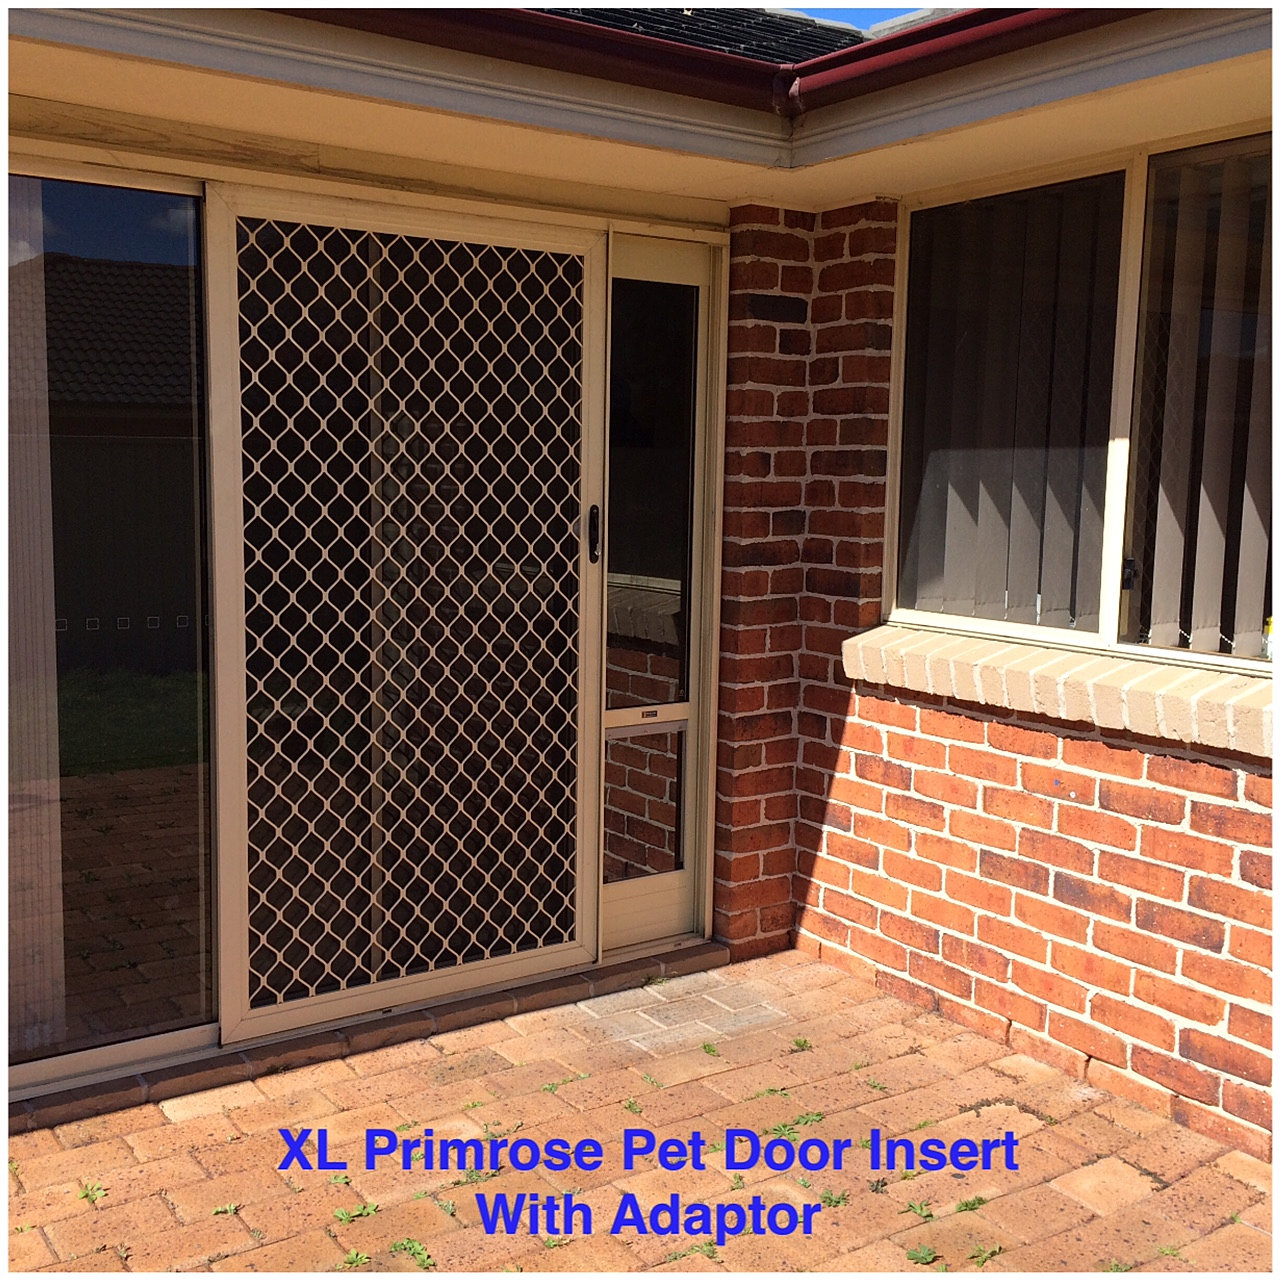 Patio Door Pet Door Insert: Patio Pet Door Inserts For Sliding Doors, Fully Lockable